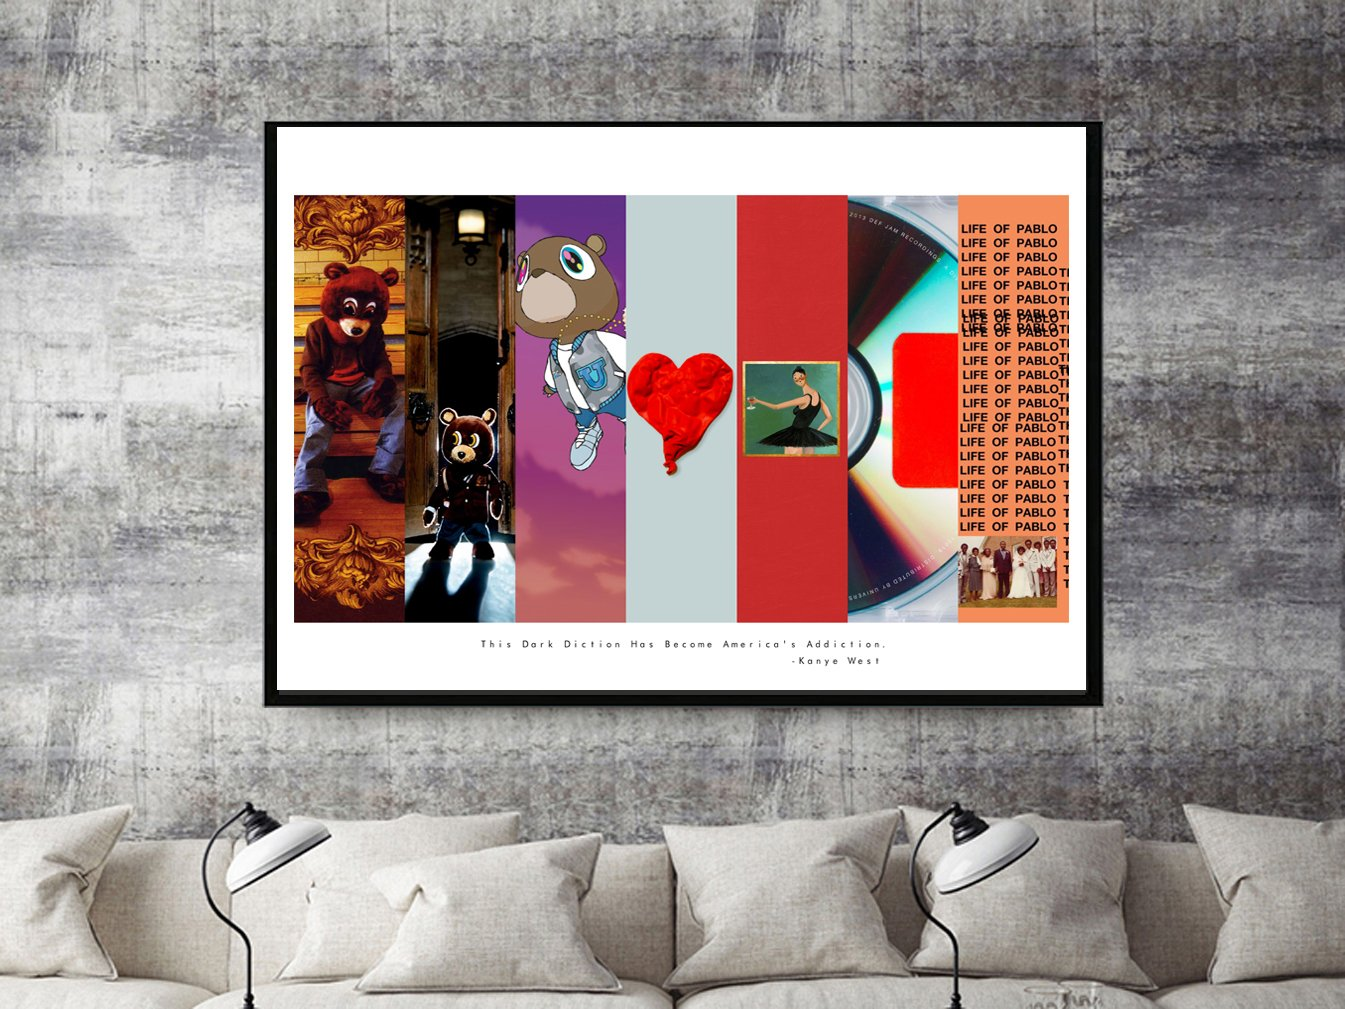 Amazon Custom Kanye West Art Collage Poster TLOP Pablo Song Lyric Quote Digital Print 12x18 Living Room Bed FRAME NOT INCLUDED Posters